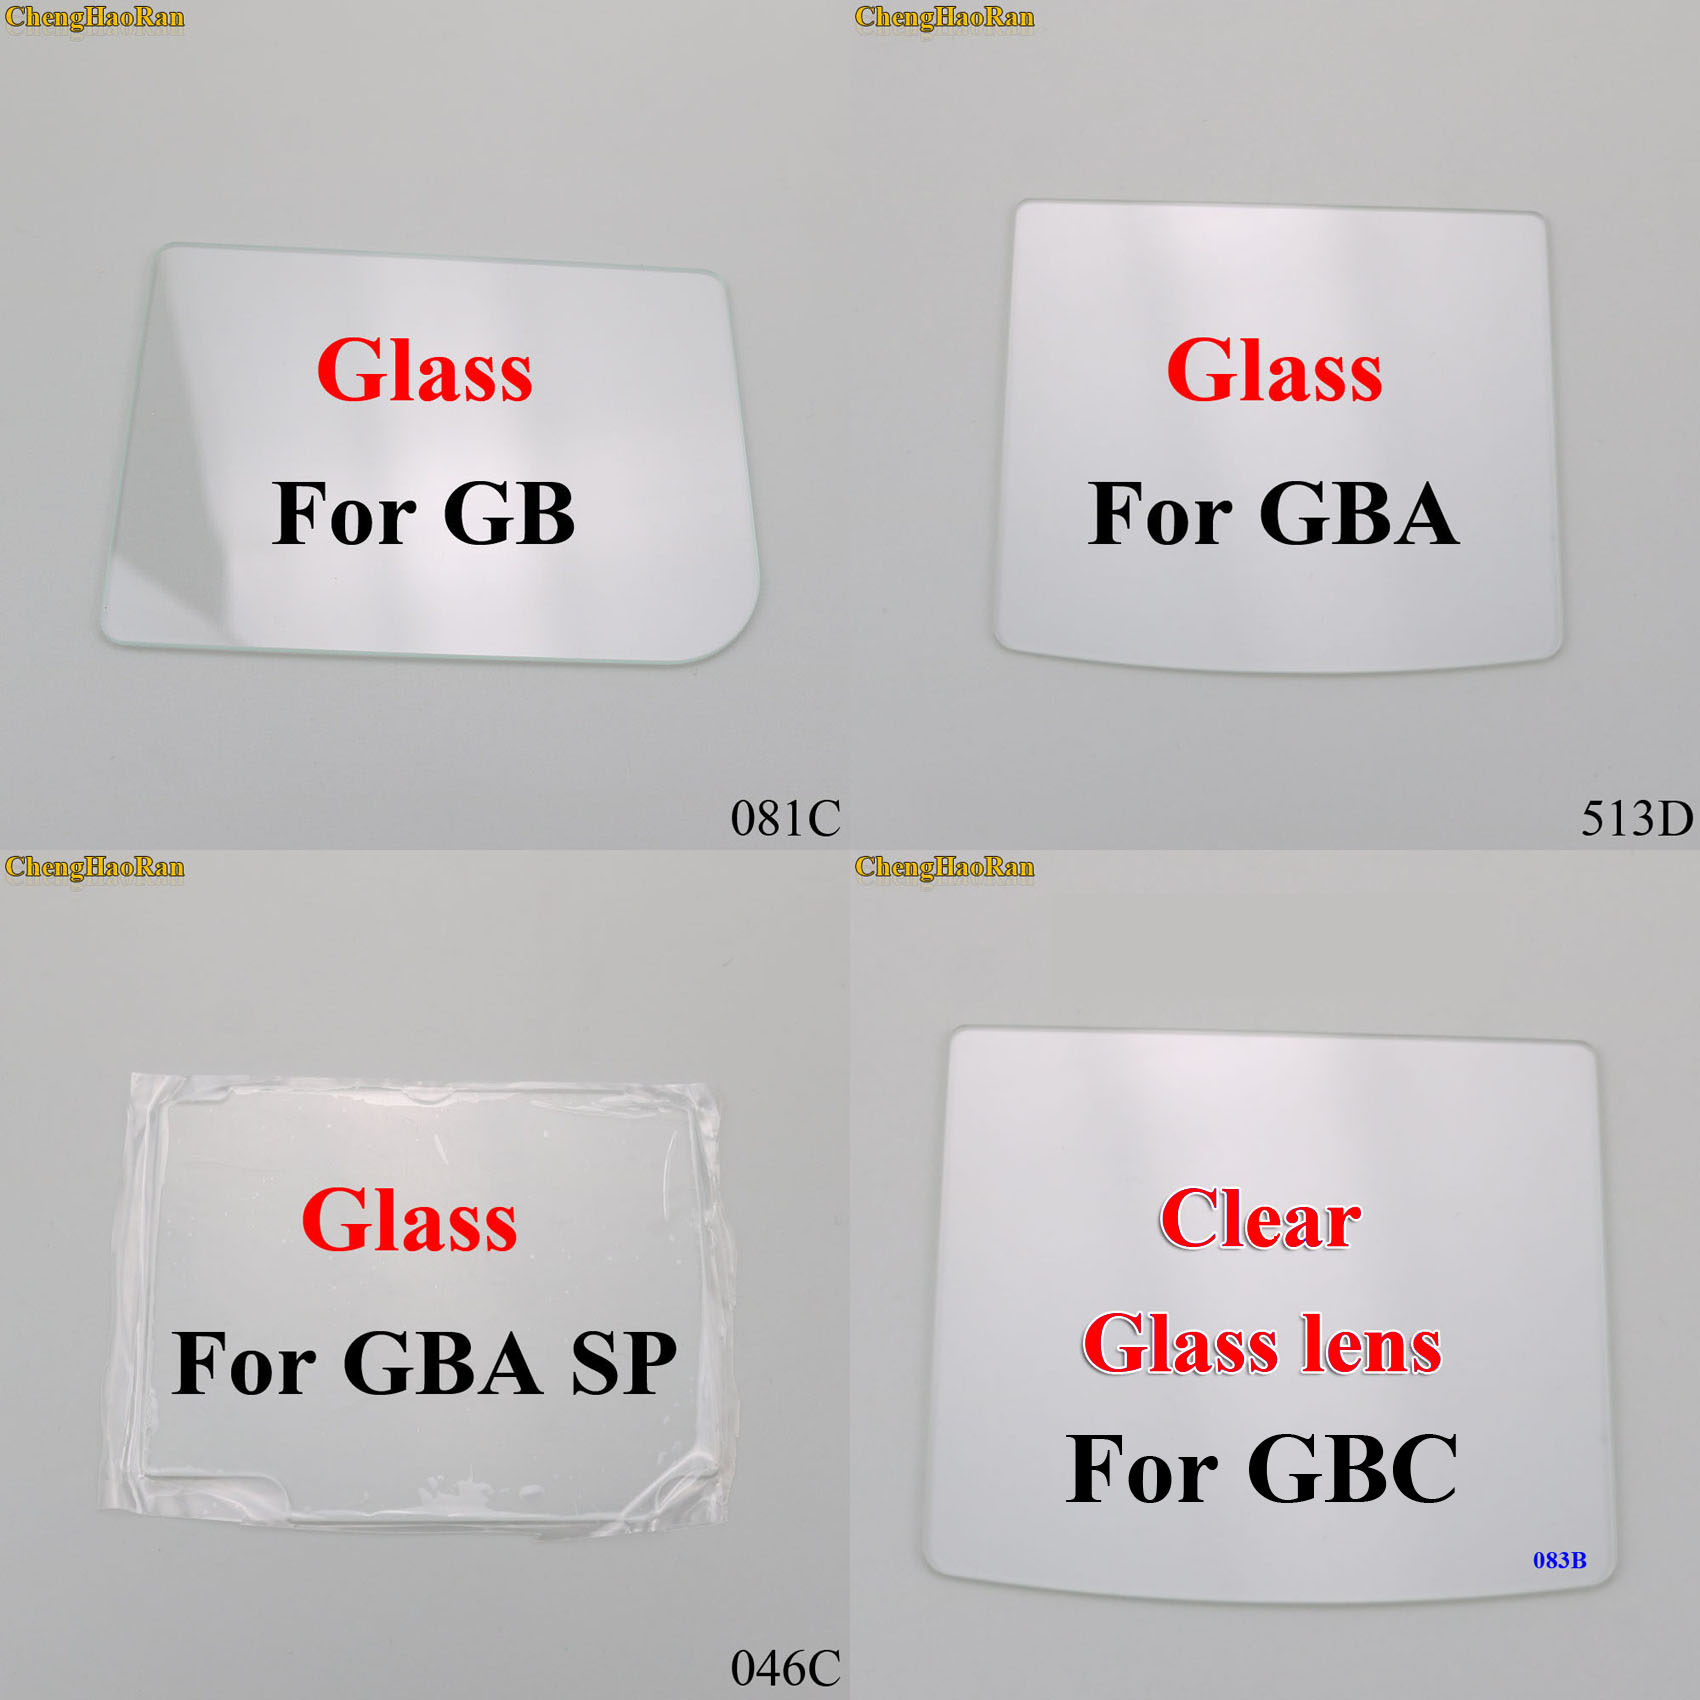 ChengHaoRan 1pc For Gameboy DMG For Raspberry Pi Modify Glass Clear Lens Protector For GBC GBA GB GBA SP